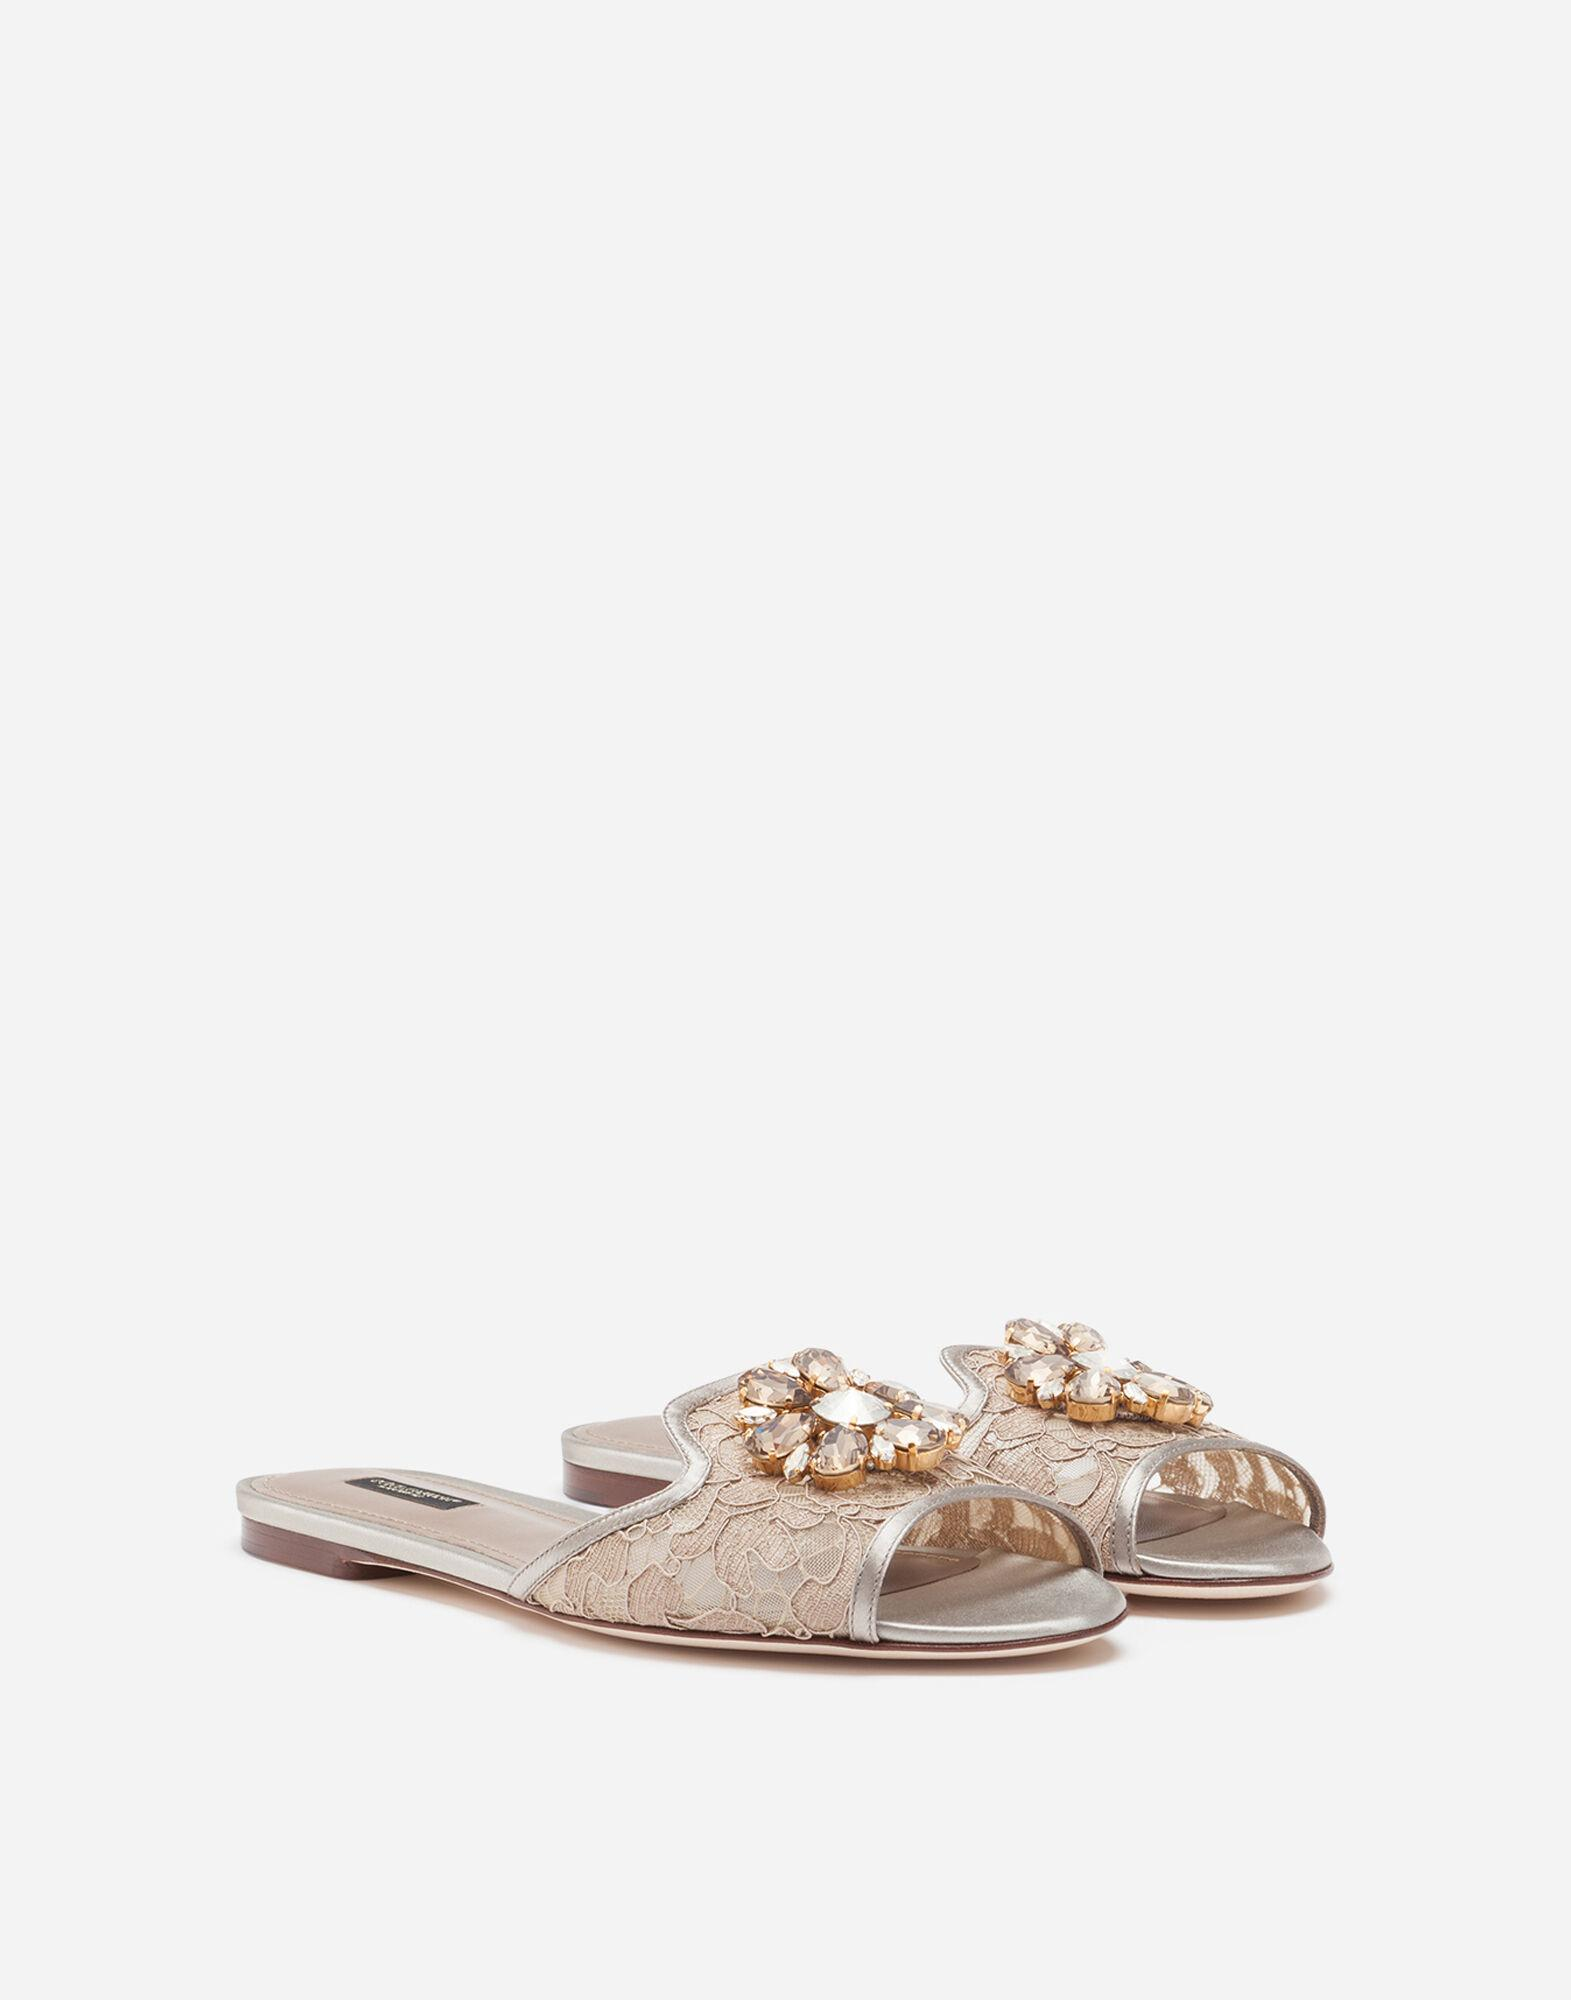 Lace slippers with crystals 1